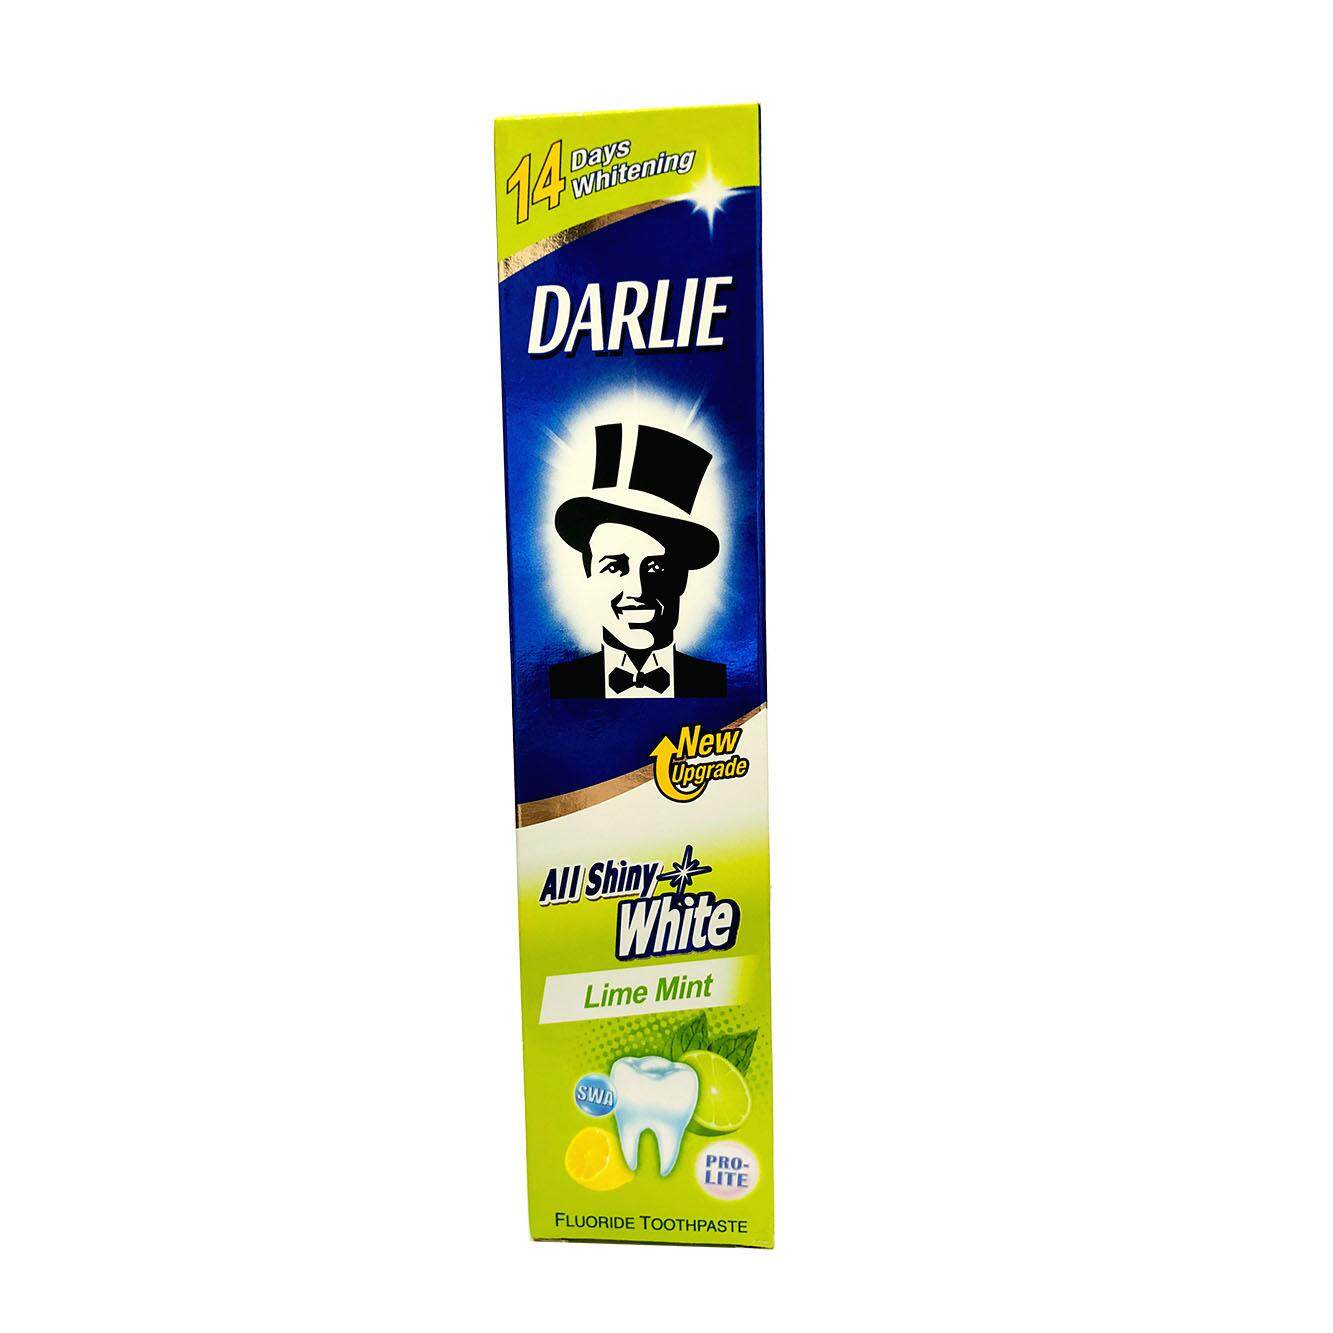 Darlie All Shiny White Toothpaste 80g For Whiter Teeth